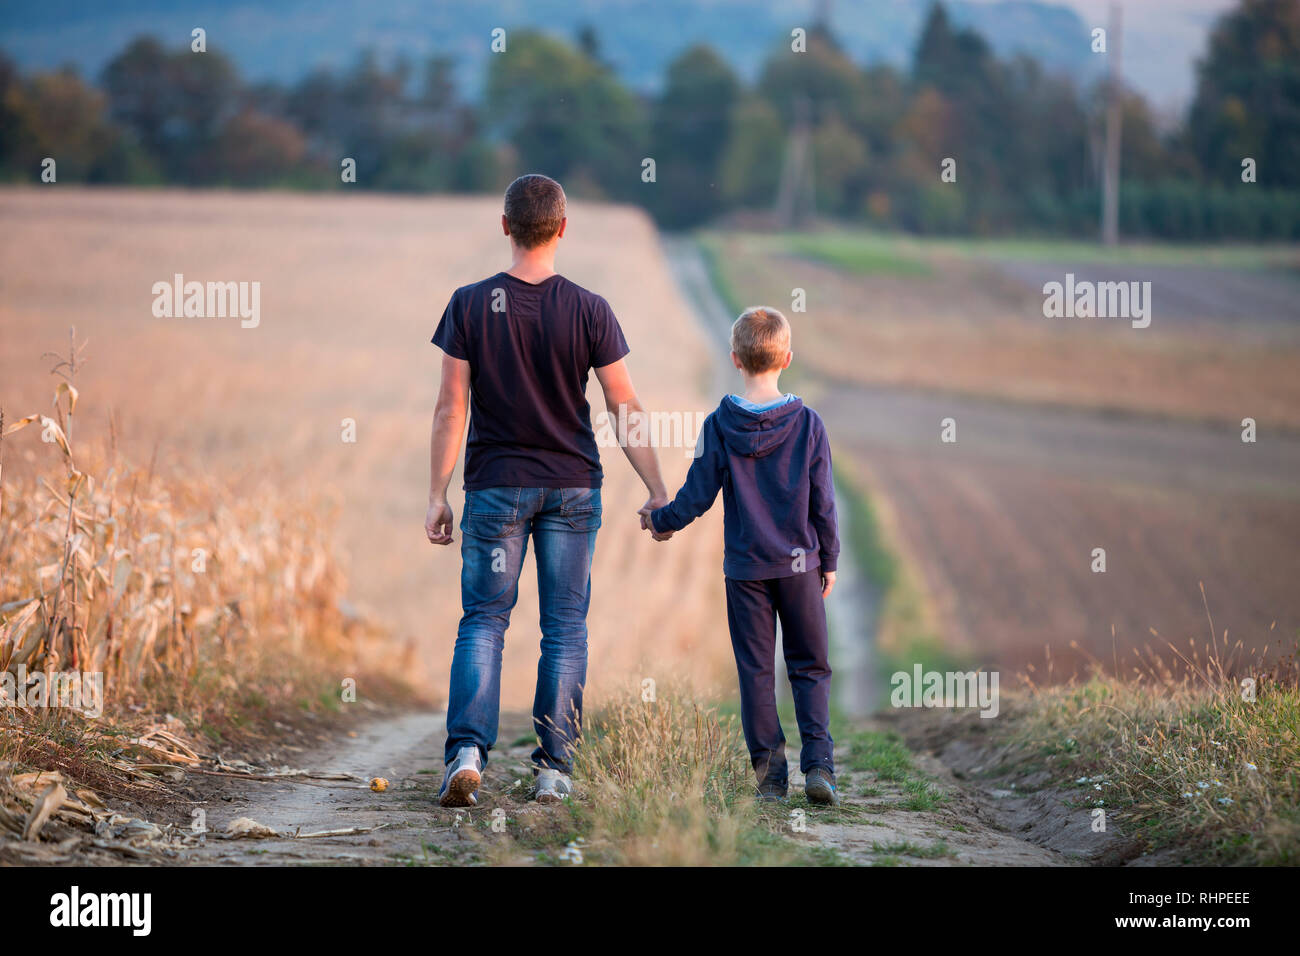 Back view of young father and son walking together holding hands by grassy field on blurred foggy green trees and blue sky background. Active lifestyl - Stock Image